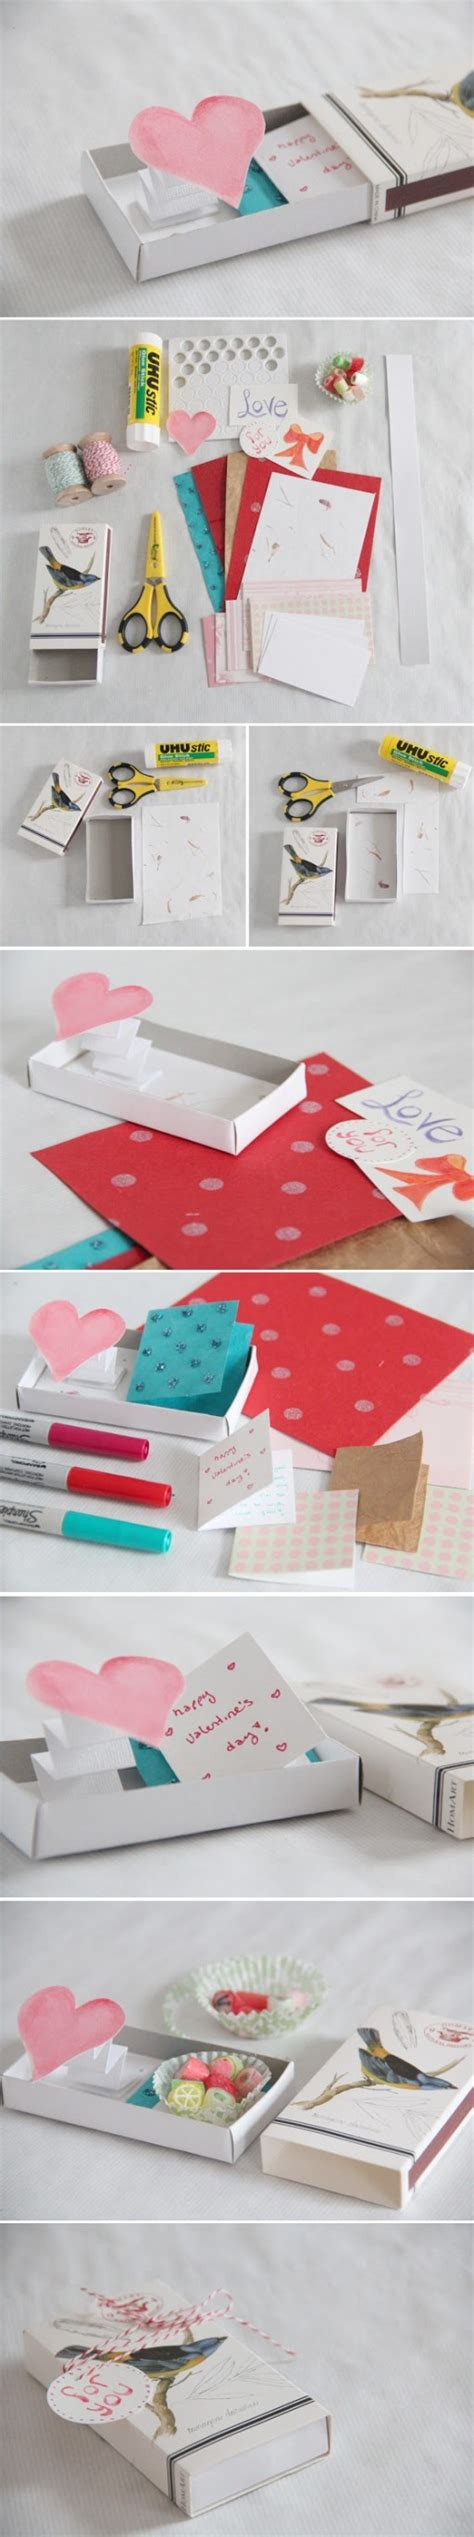 how to make pop up love gift box step by step diy tutorial